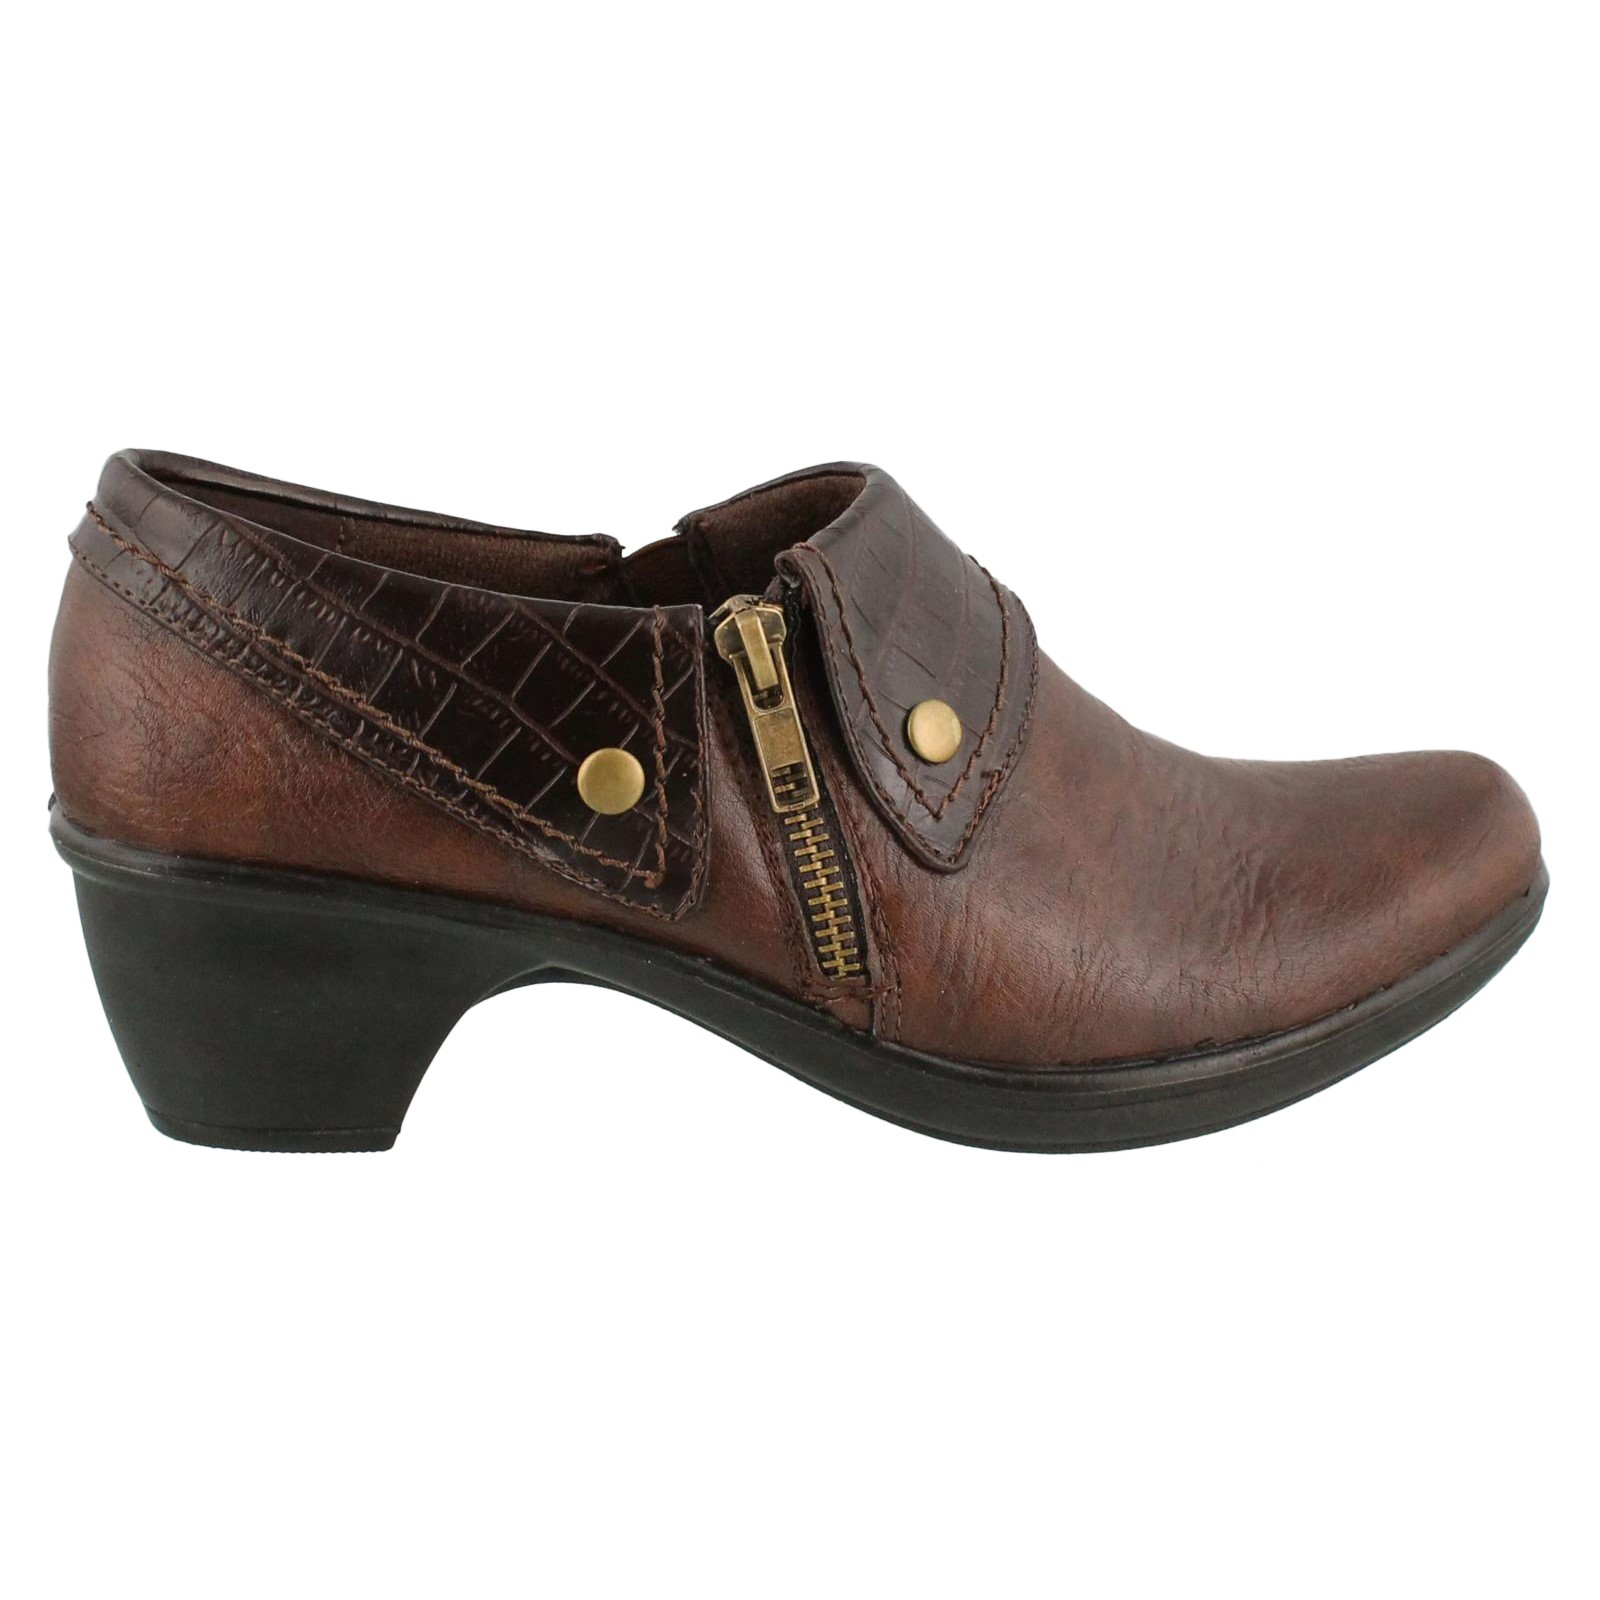 Women's Easy Street, Darcy Shootie